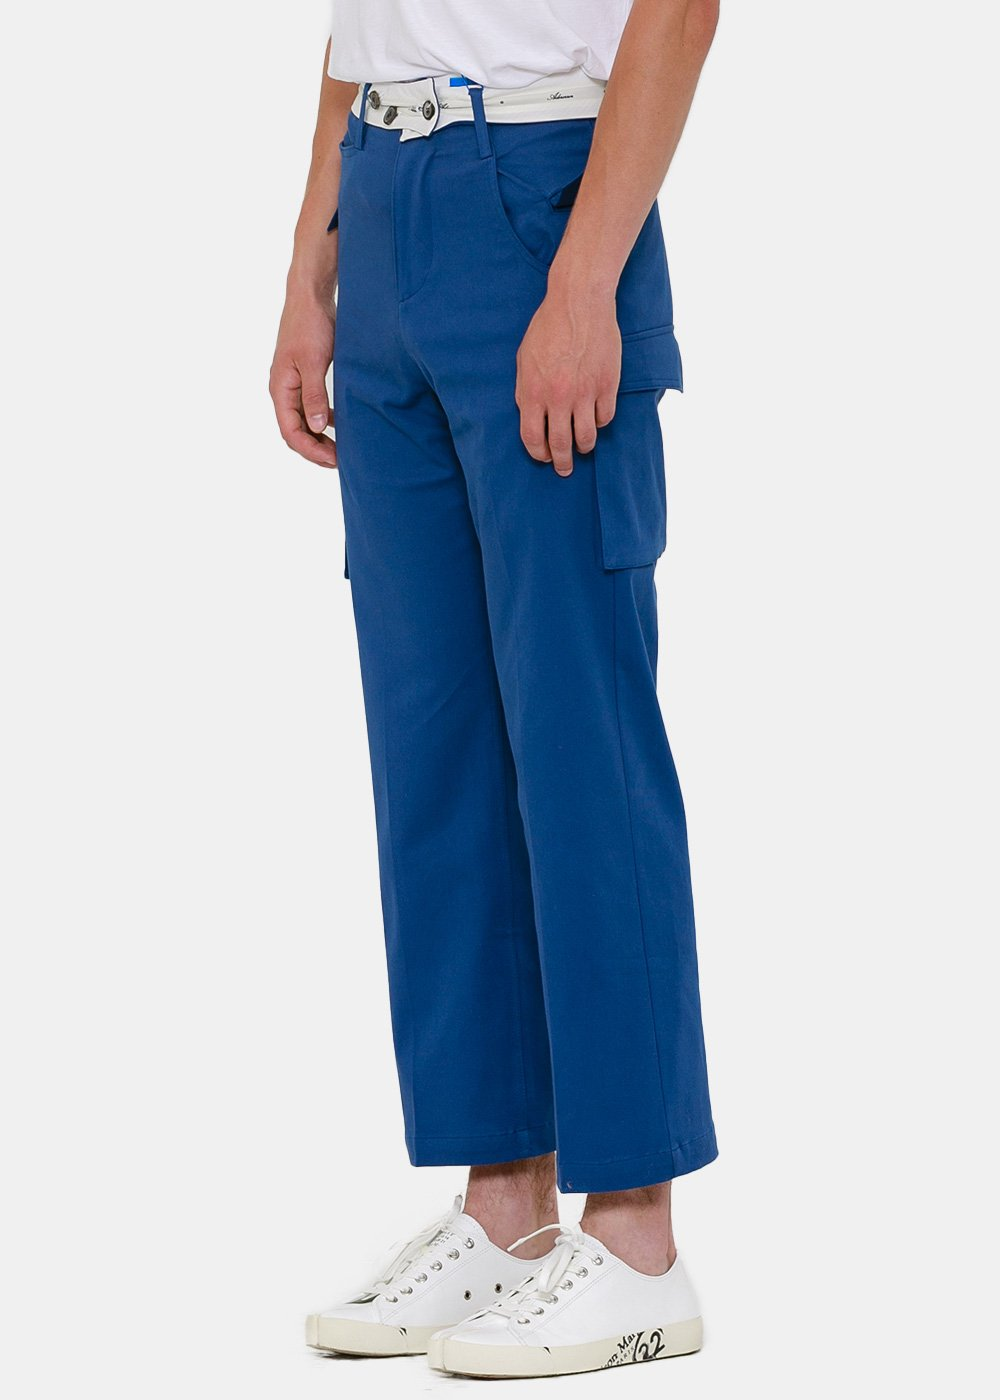 Blue Asymmetric Pants